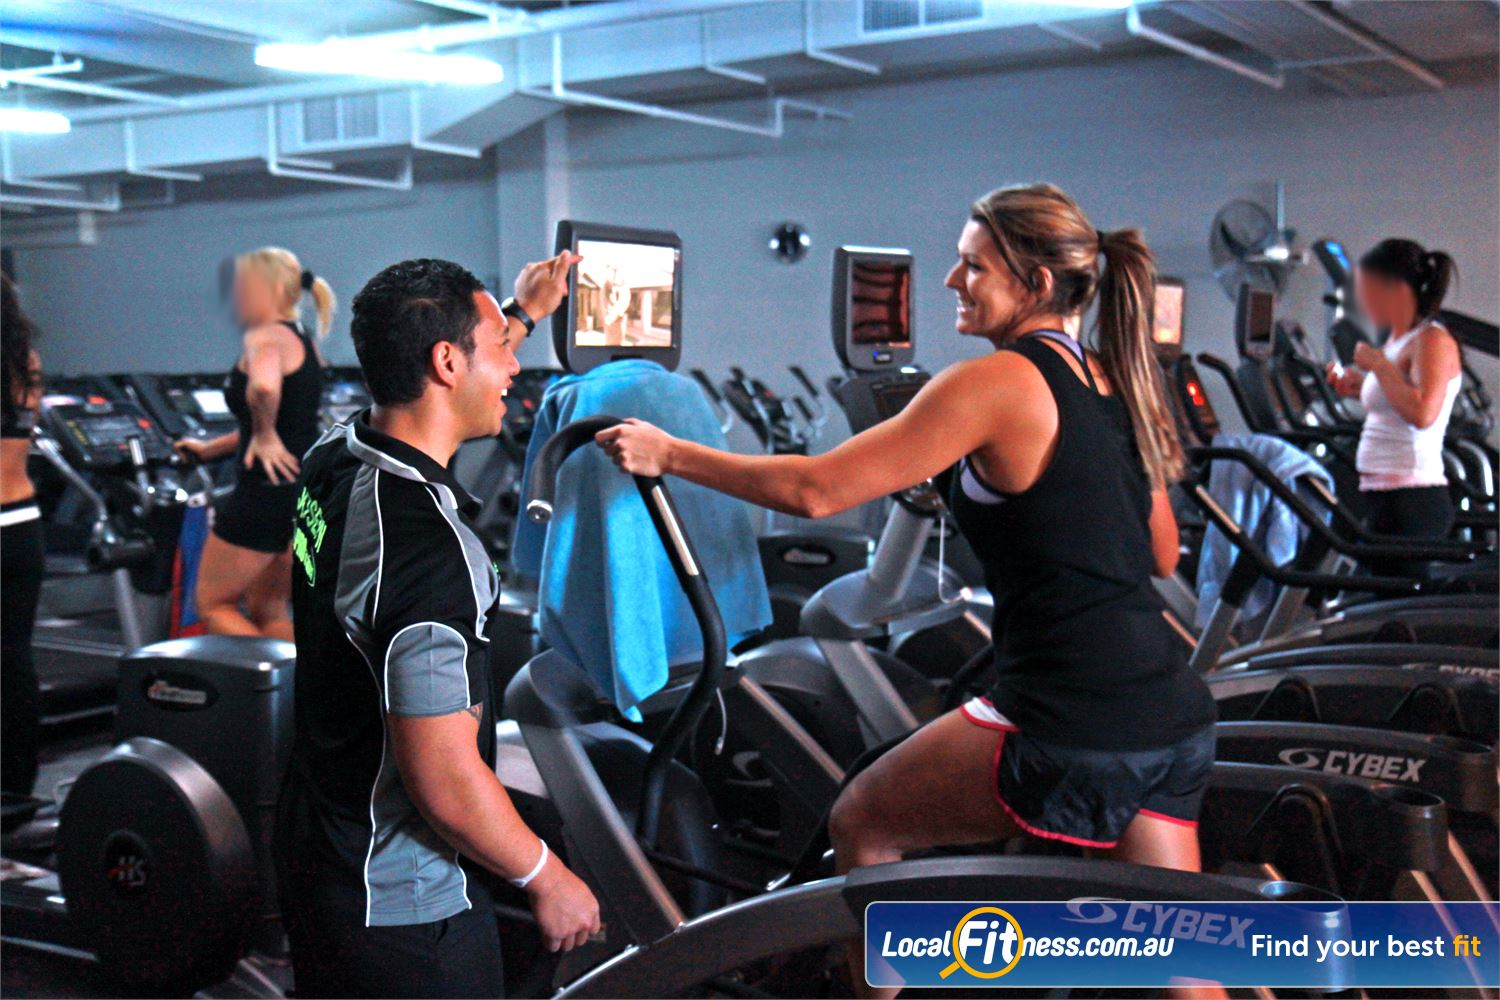 Goodlife Health Clubs Robina Our Robina gym team can tailor a cardio workout to suit you.